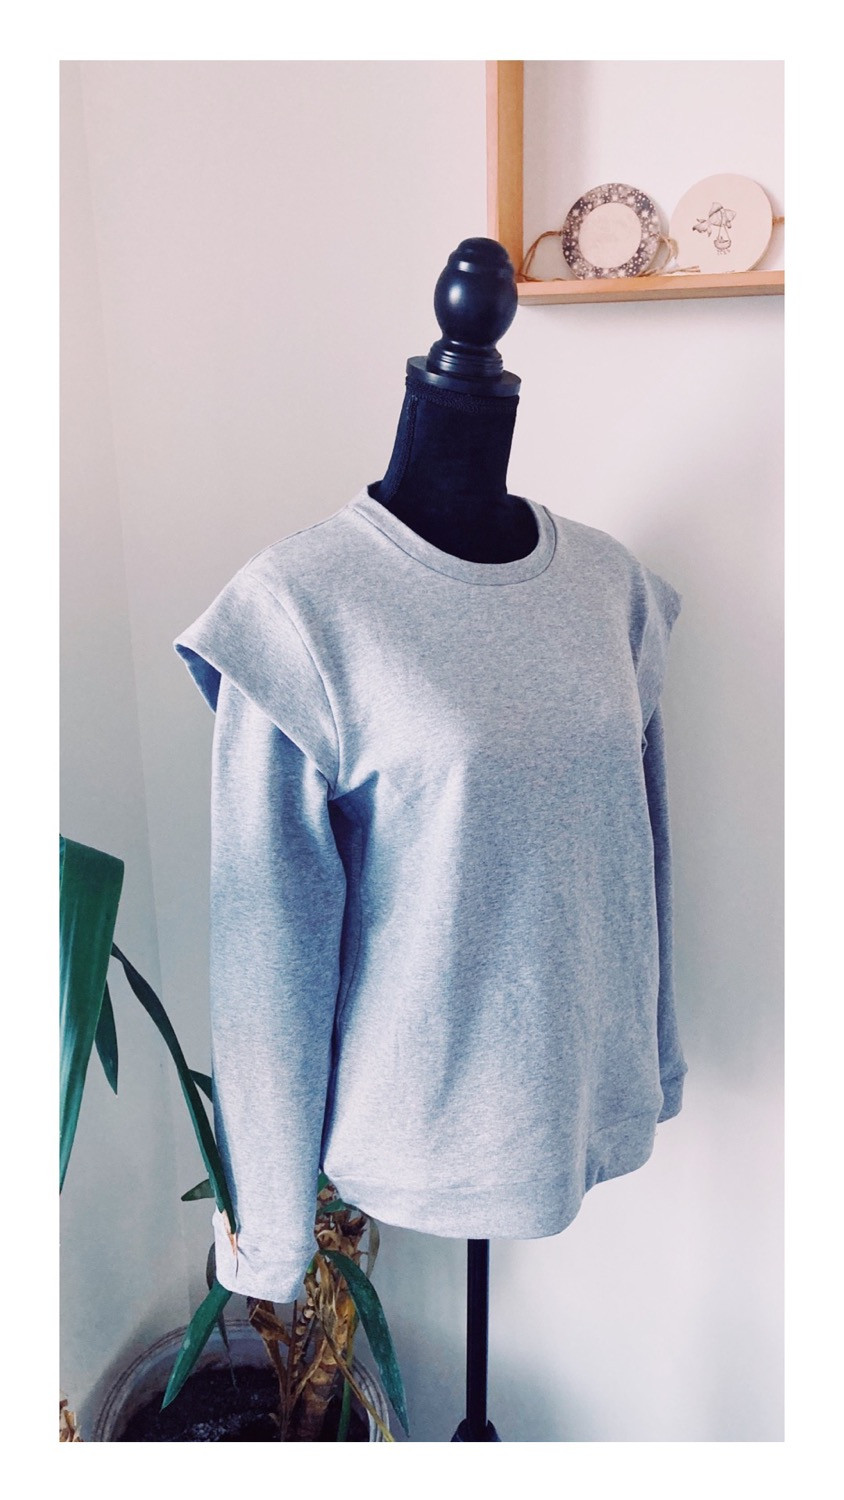 modified Andrea Sweatshirt from Petit Patron patterns, handmade by Alexa from Slow living blog